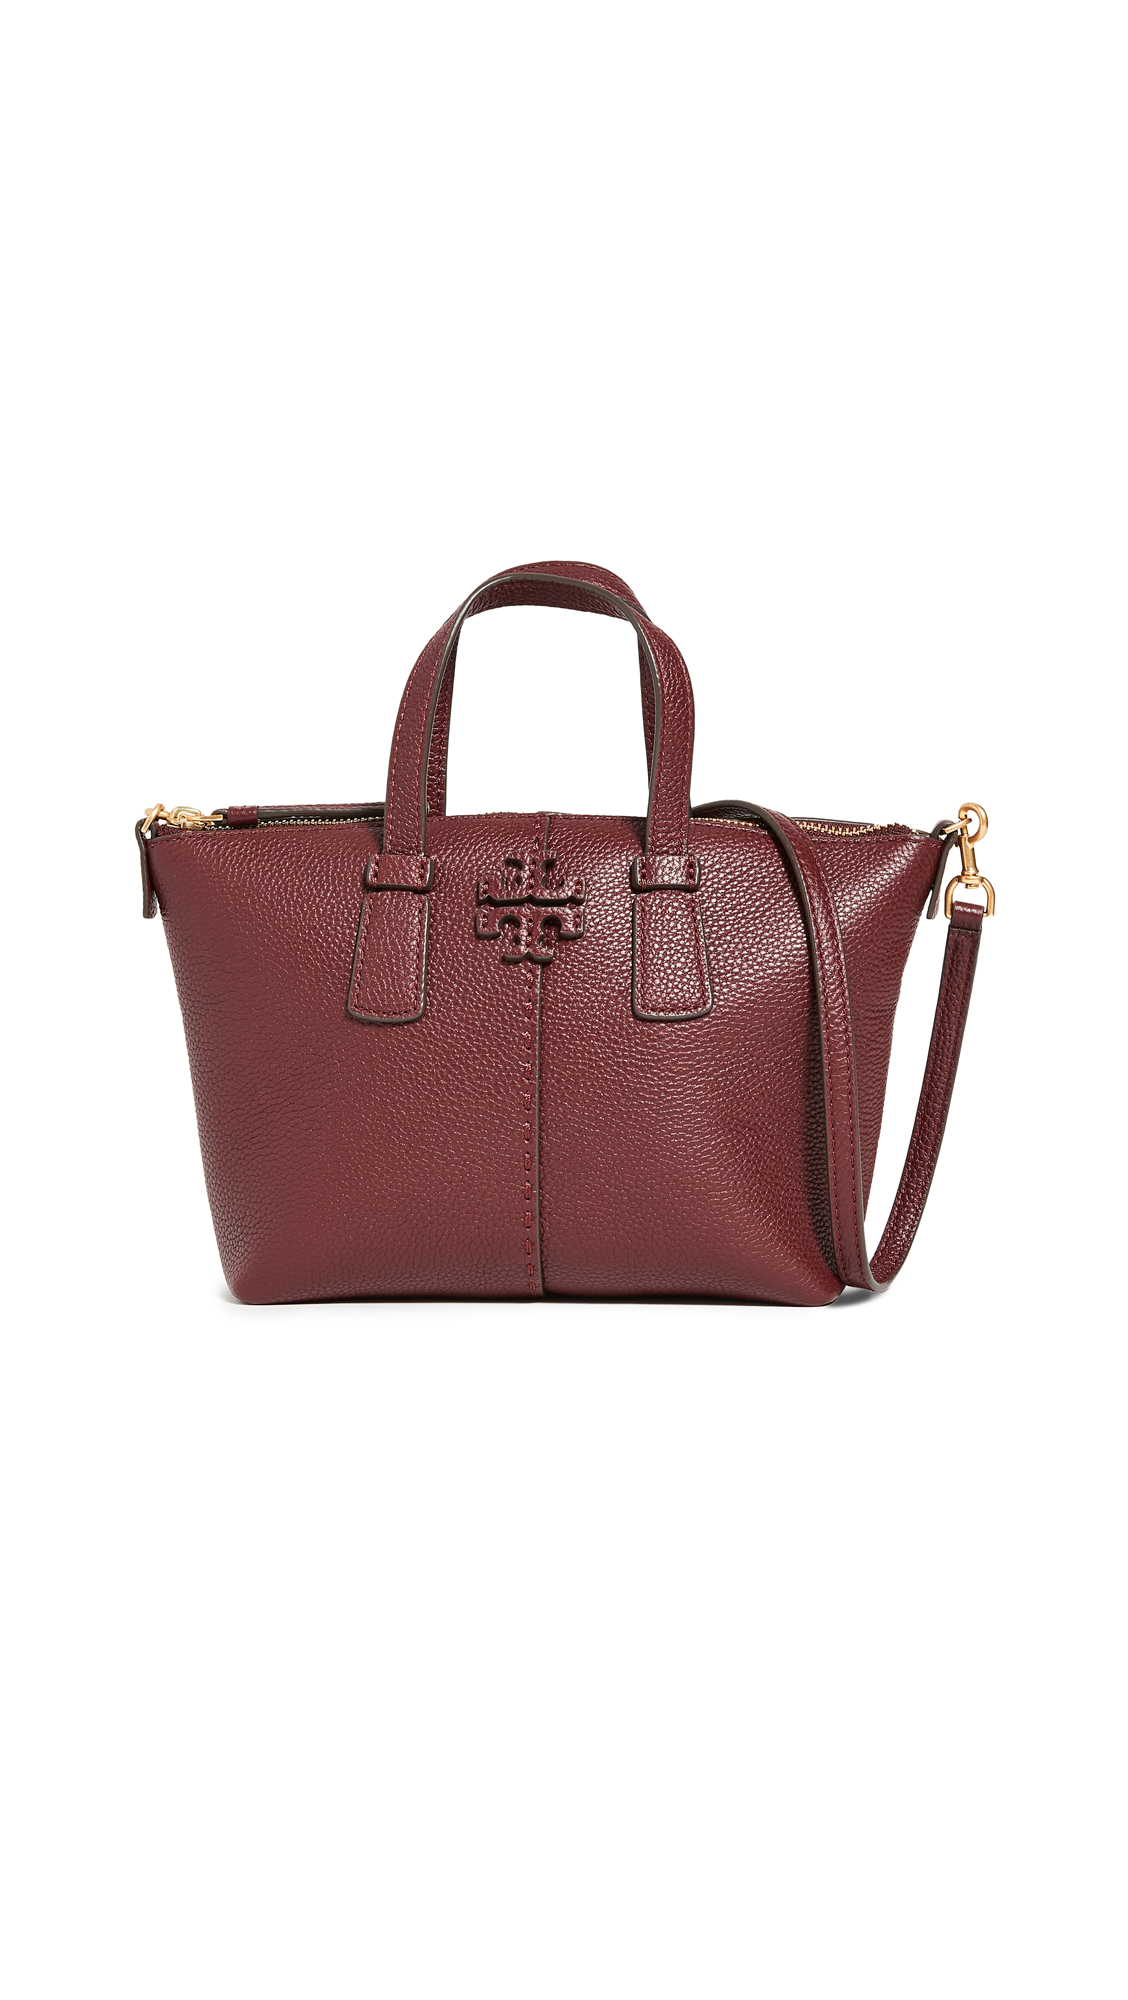 Tory Burch McGraw Mini Top Zip Satchel